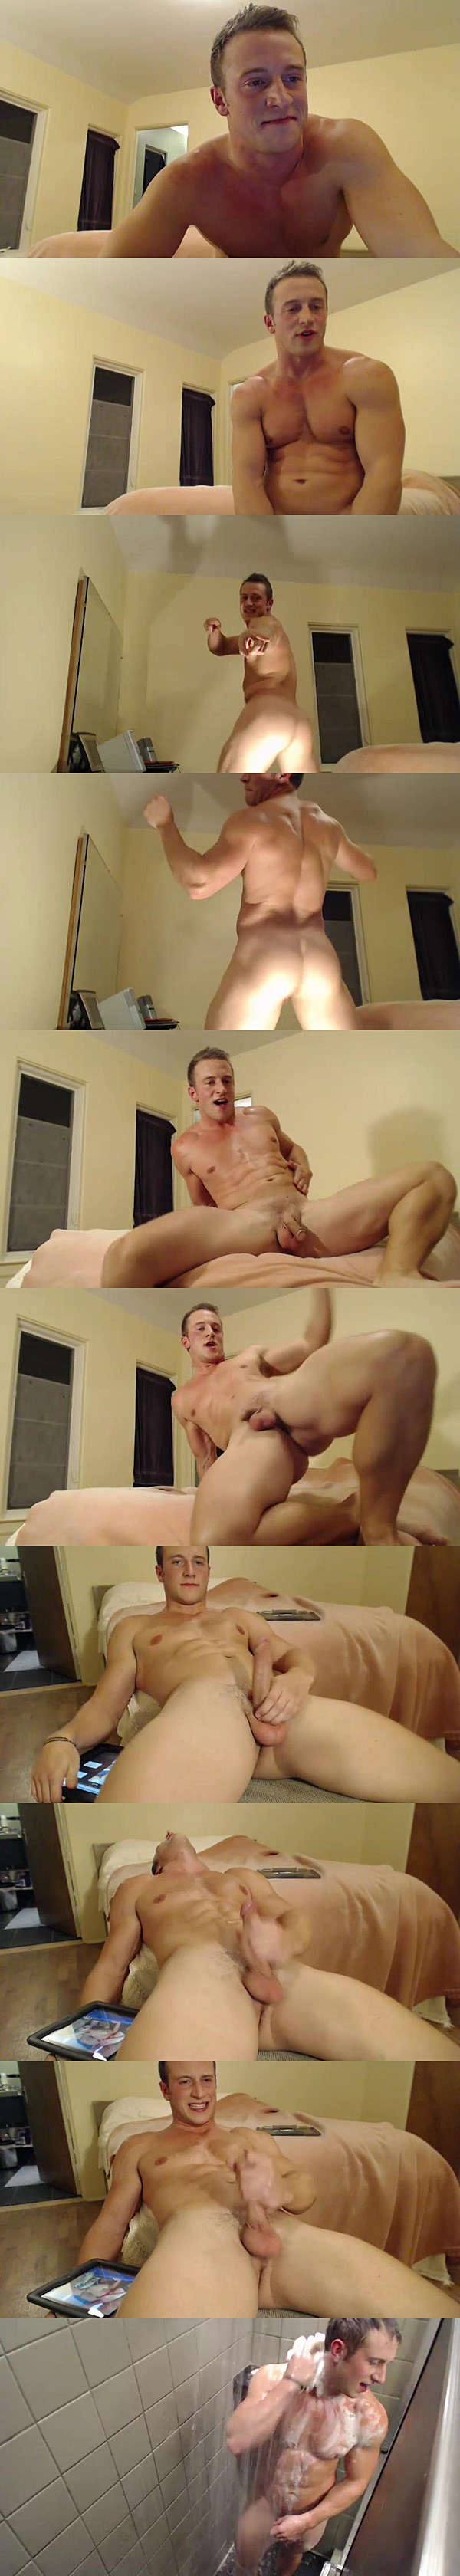 Hot energetic athletic jock Doc Tay Tay has a hot jacking off live show at Gayhoopla